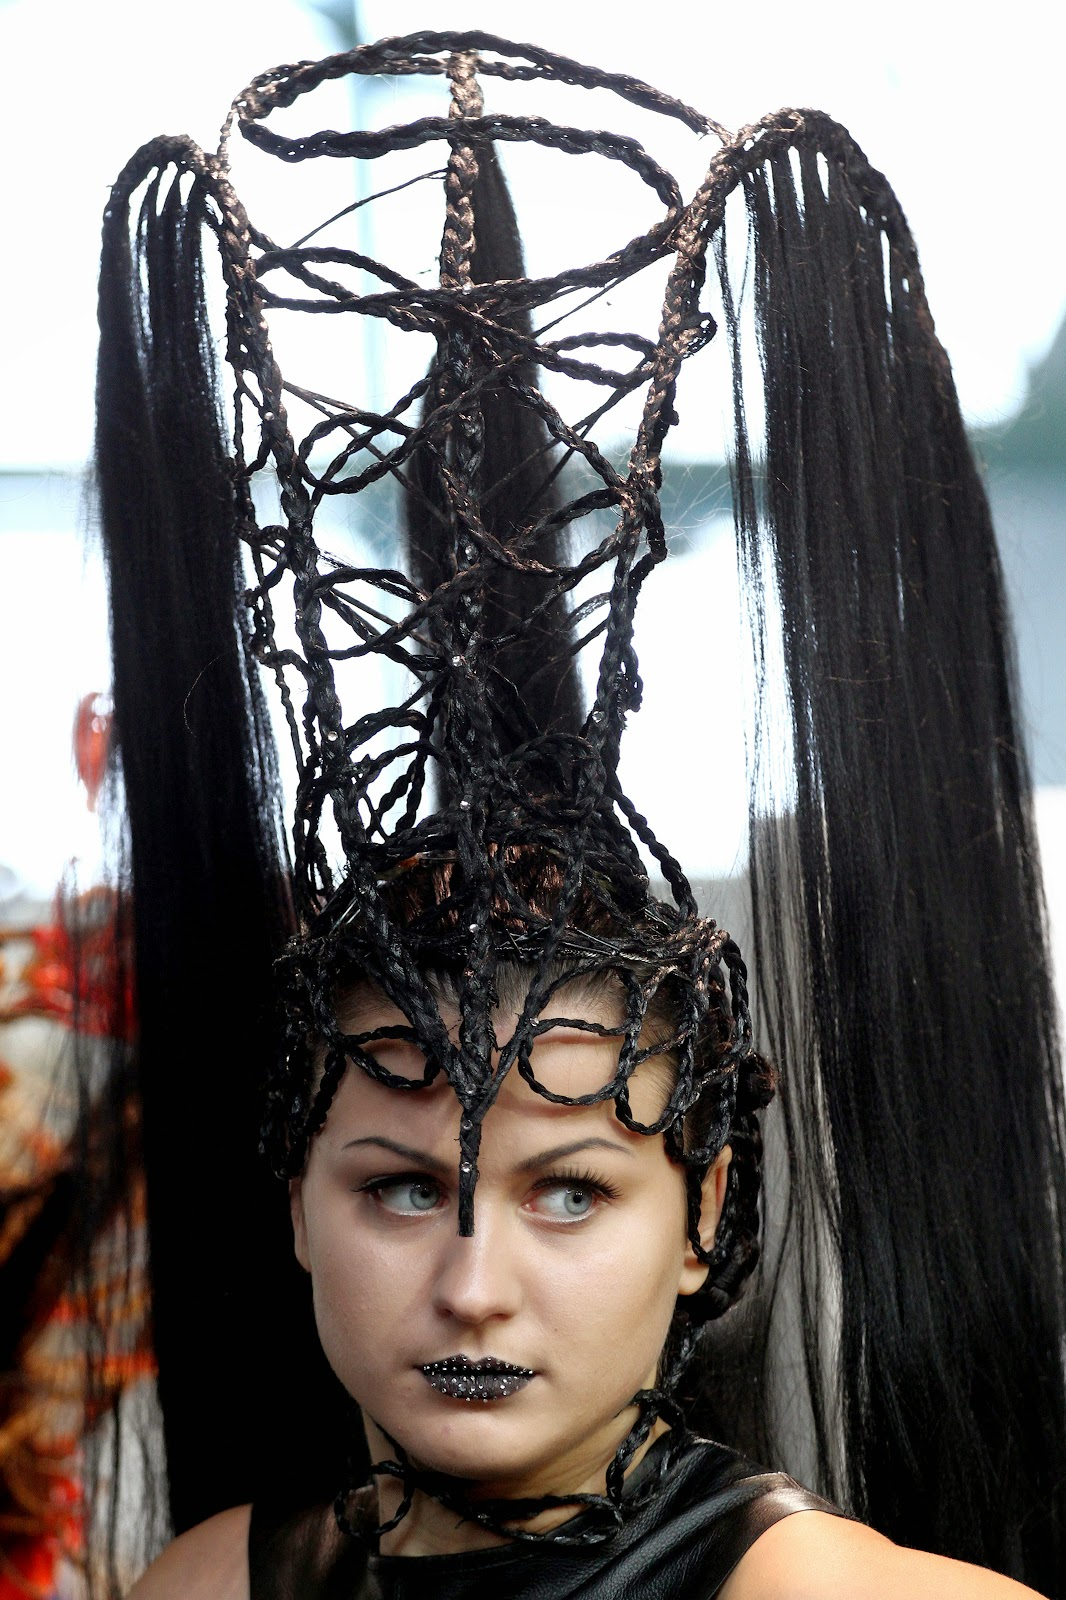 International Hair Styling Festival Rosa vetrov Hair-2014 in Pictures